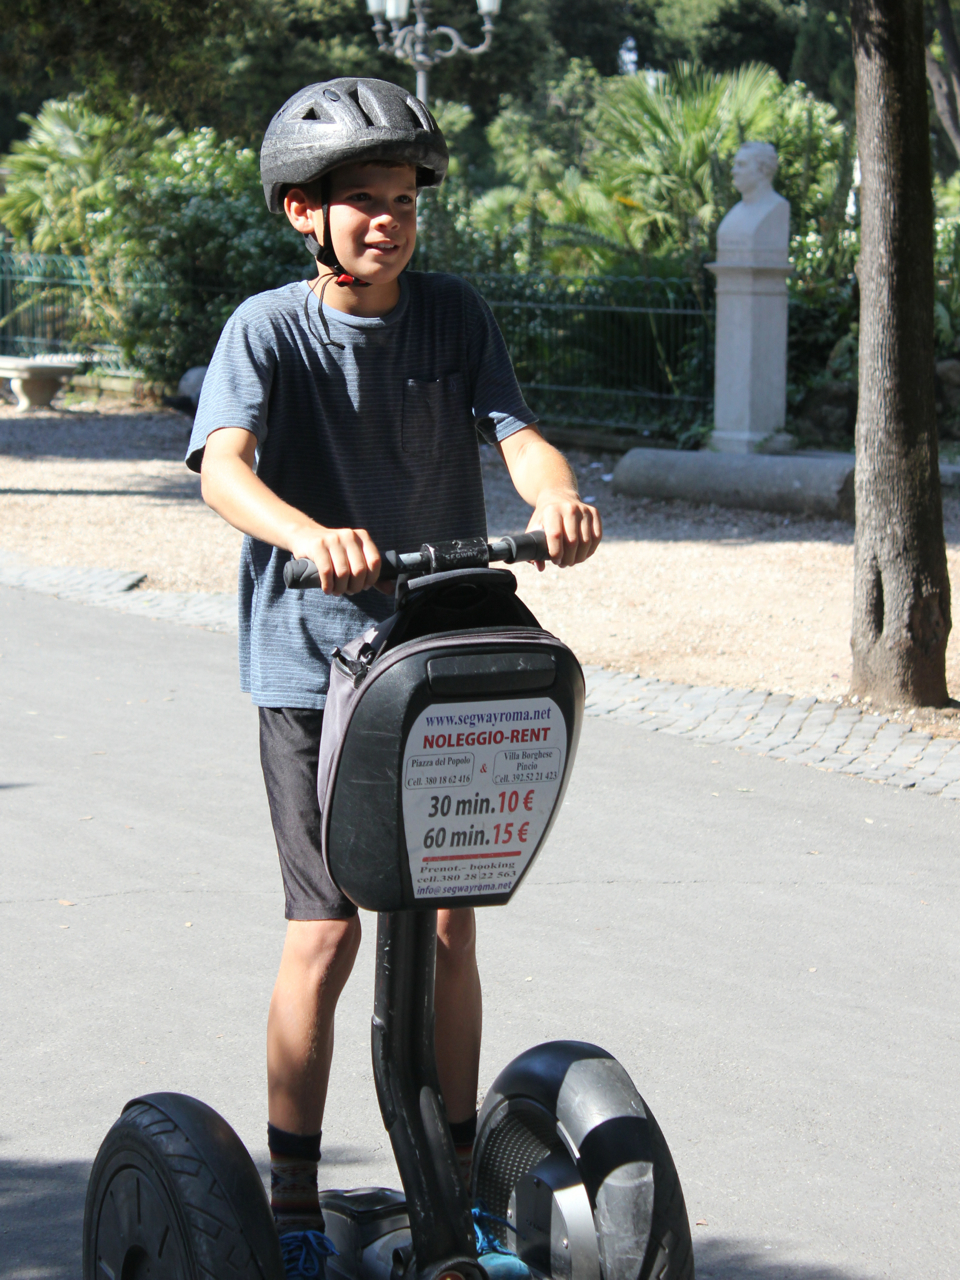 Grant on a Segway